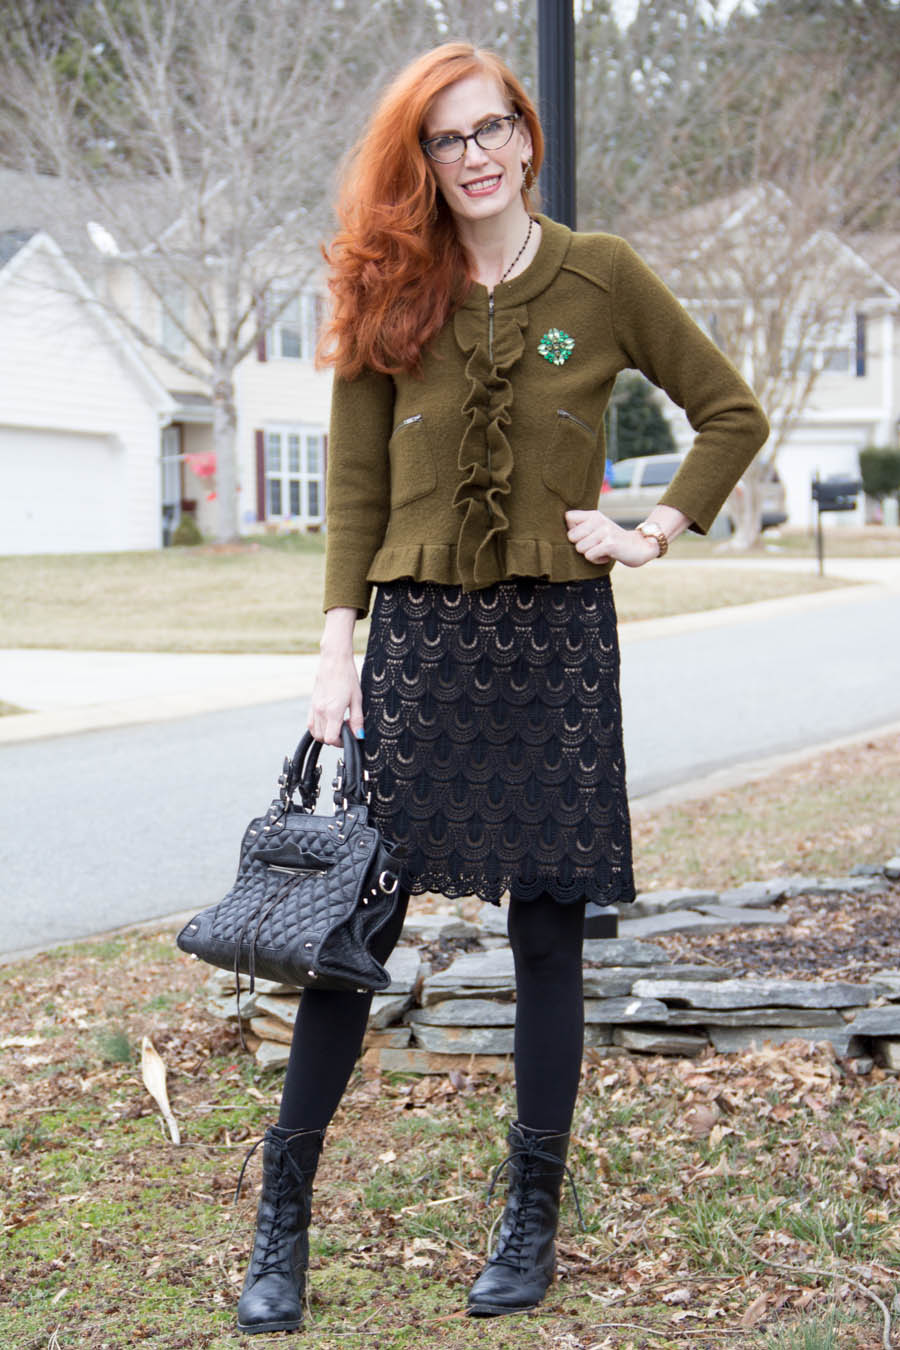 Olive This Shade Of Green Elegantly Dressed And Stylish Fashion Over 50